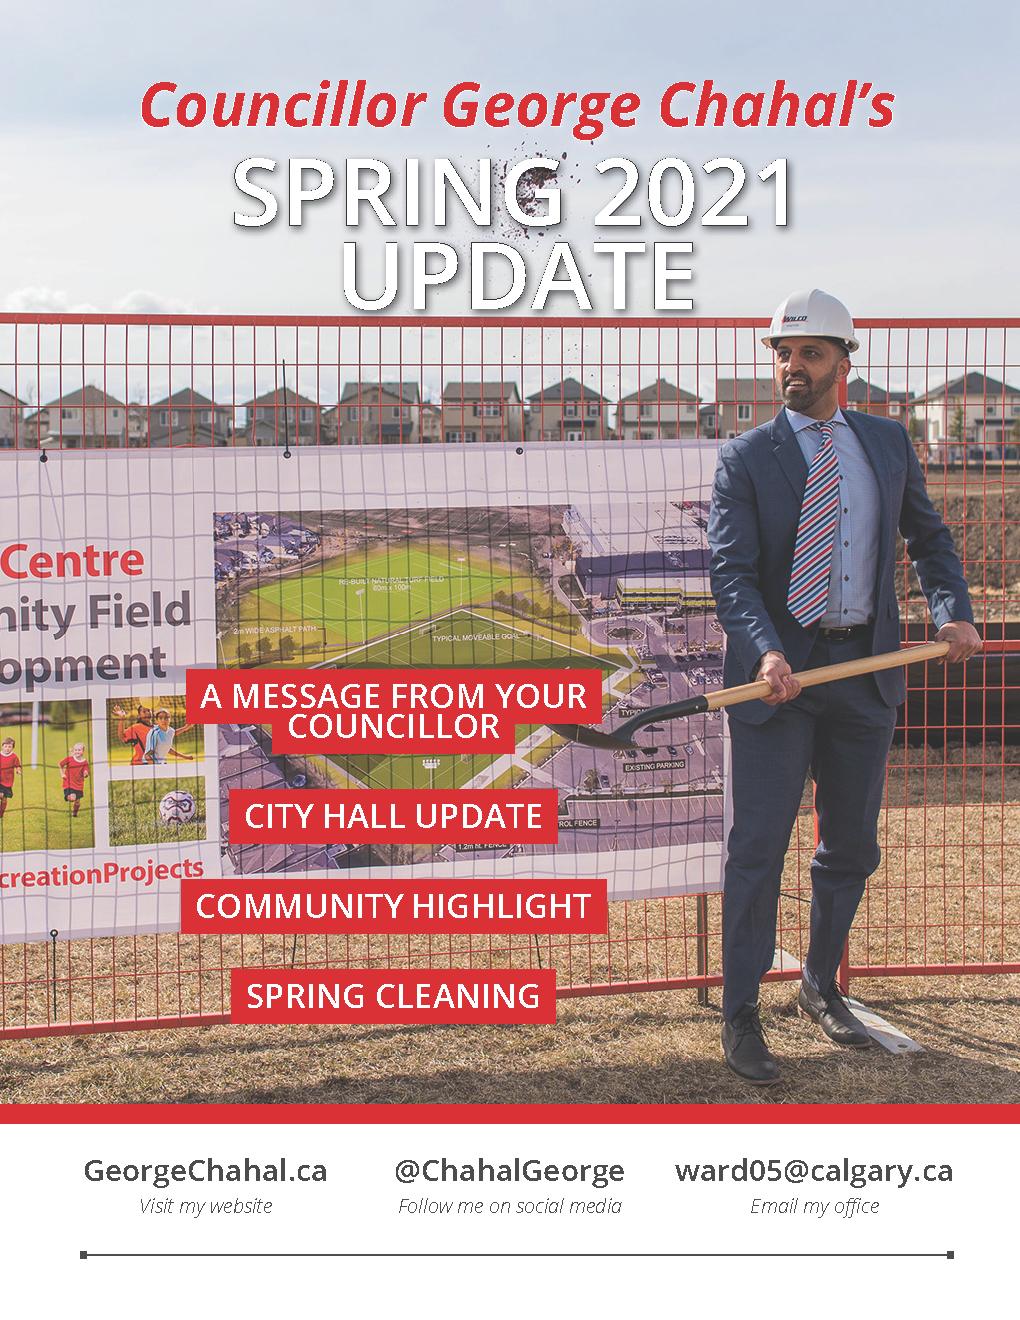 Cover page of George Chahal's Spring 2021 Update.